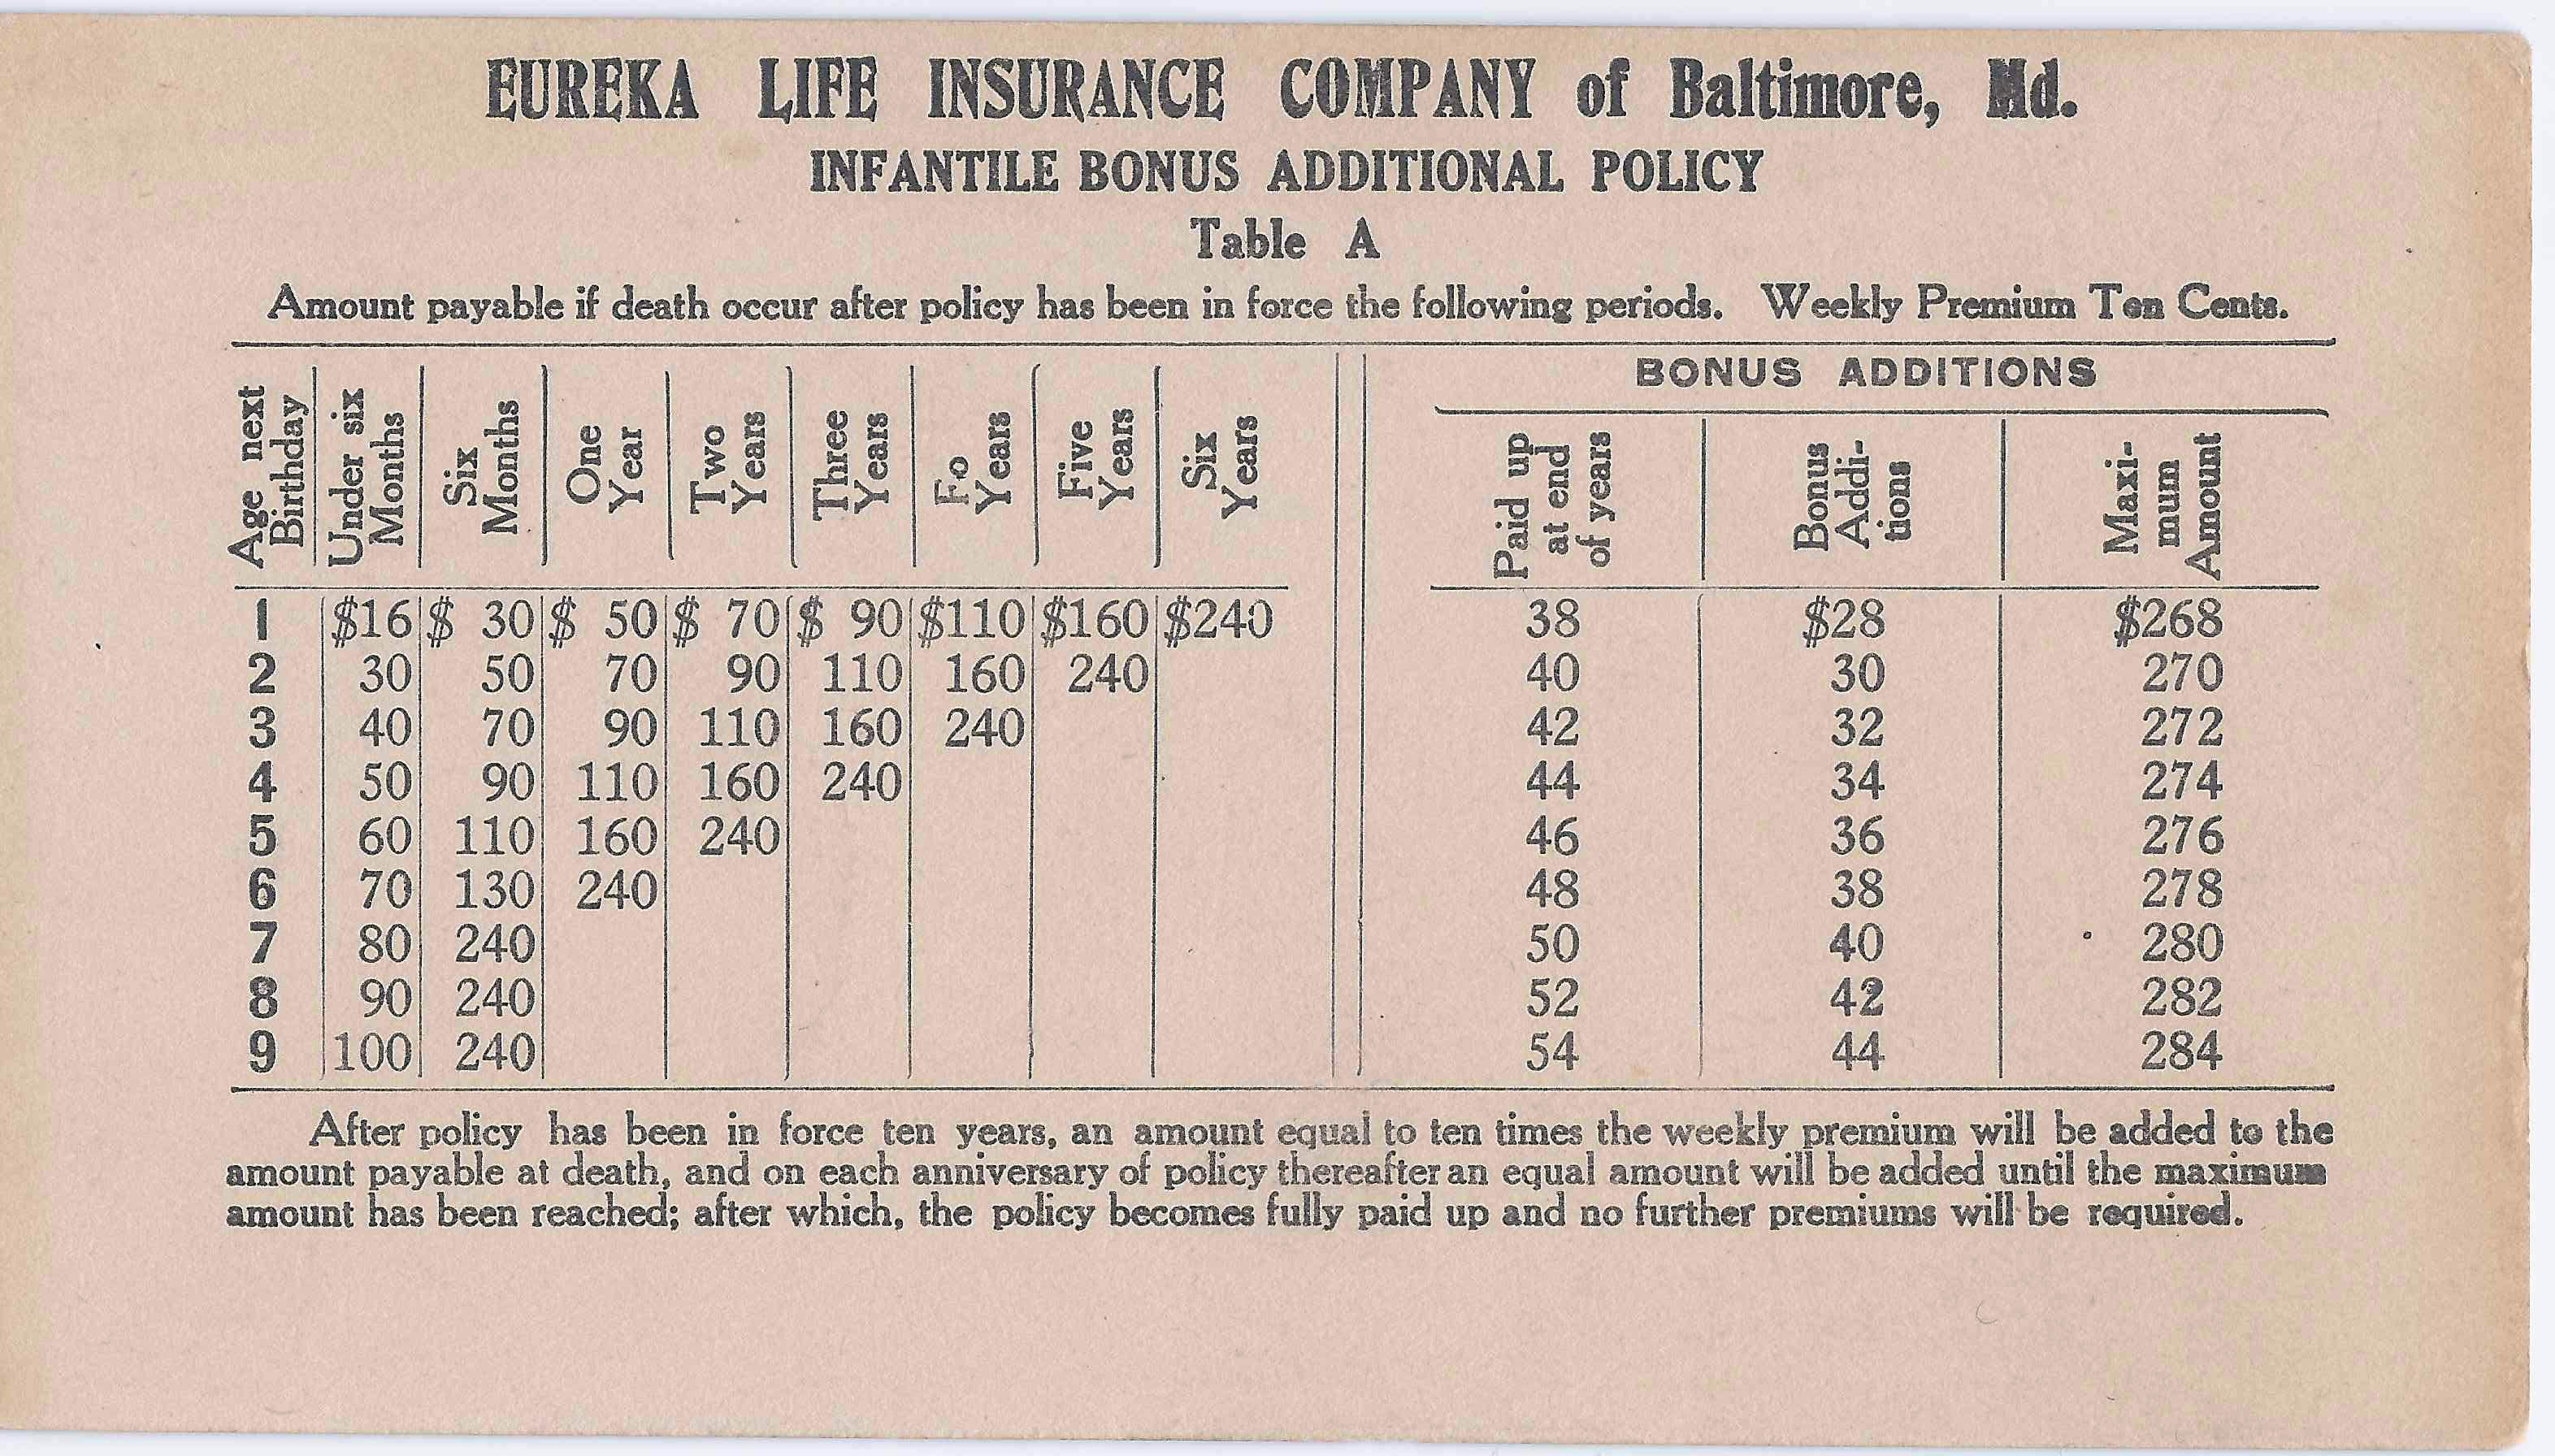 Tiaa Cref Life Insurance Quote May 2015  Best Insurance For Life